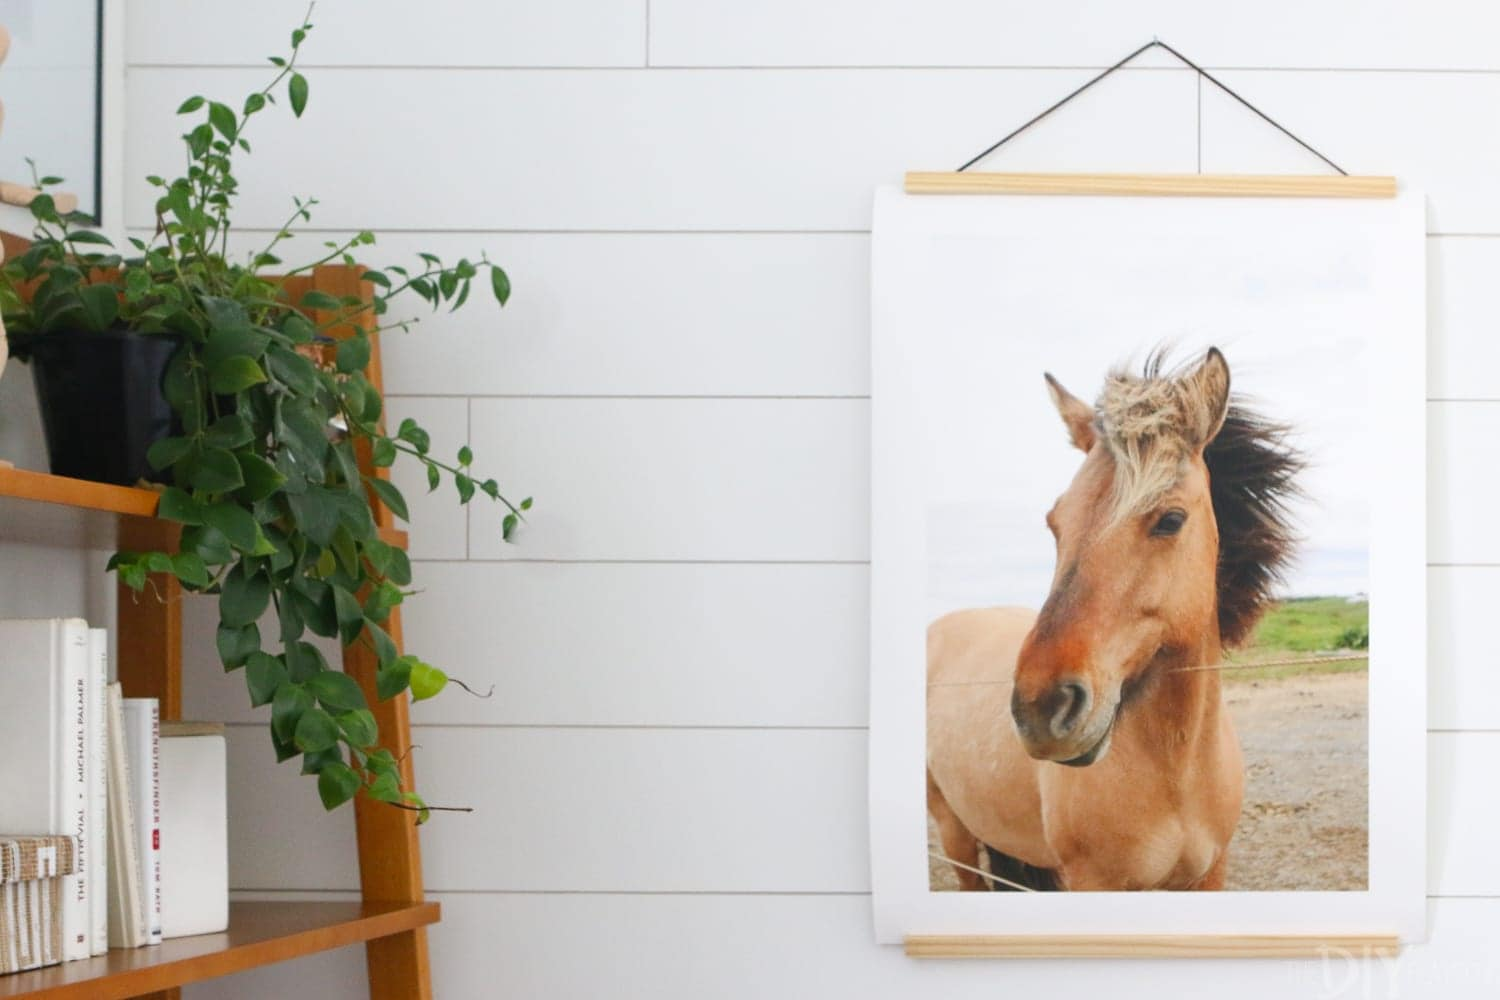 Print_Shop_DIY_Playbook-horse-print-office